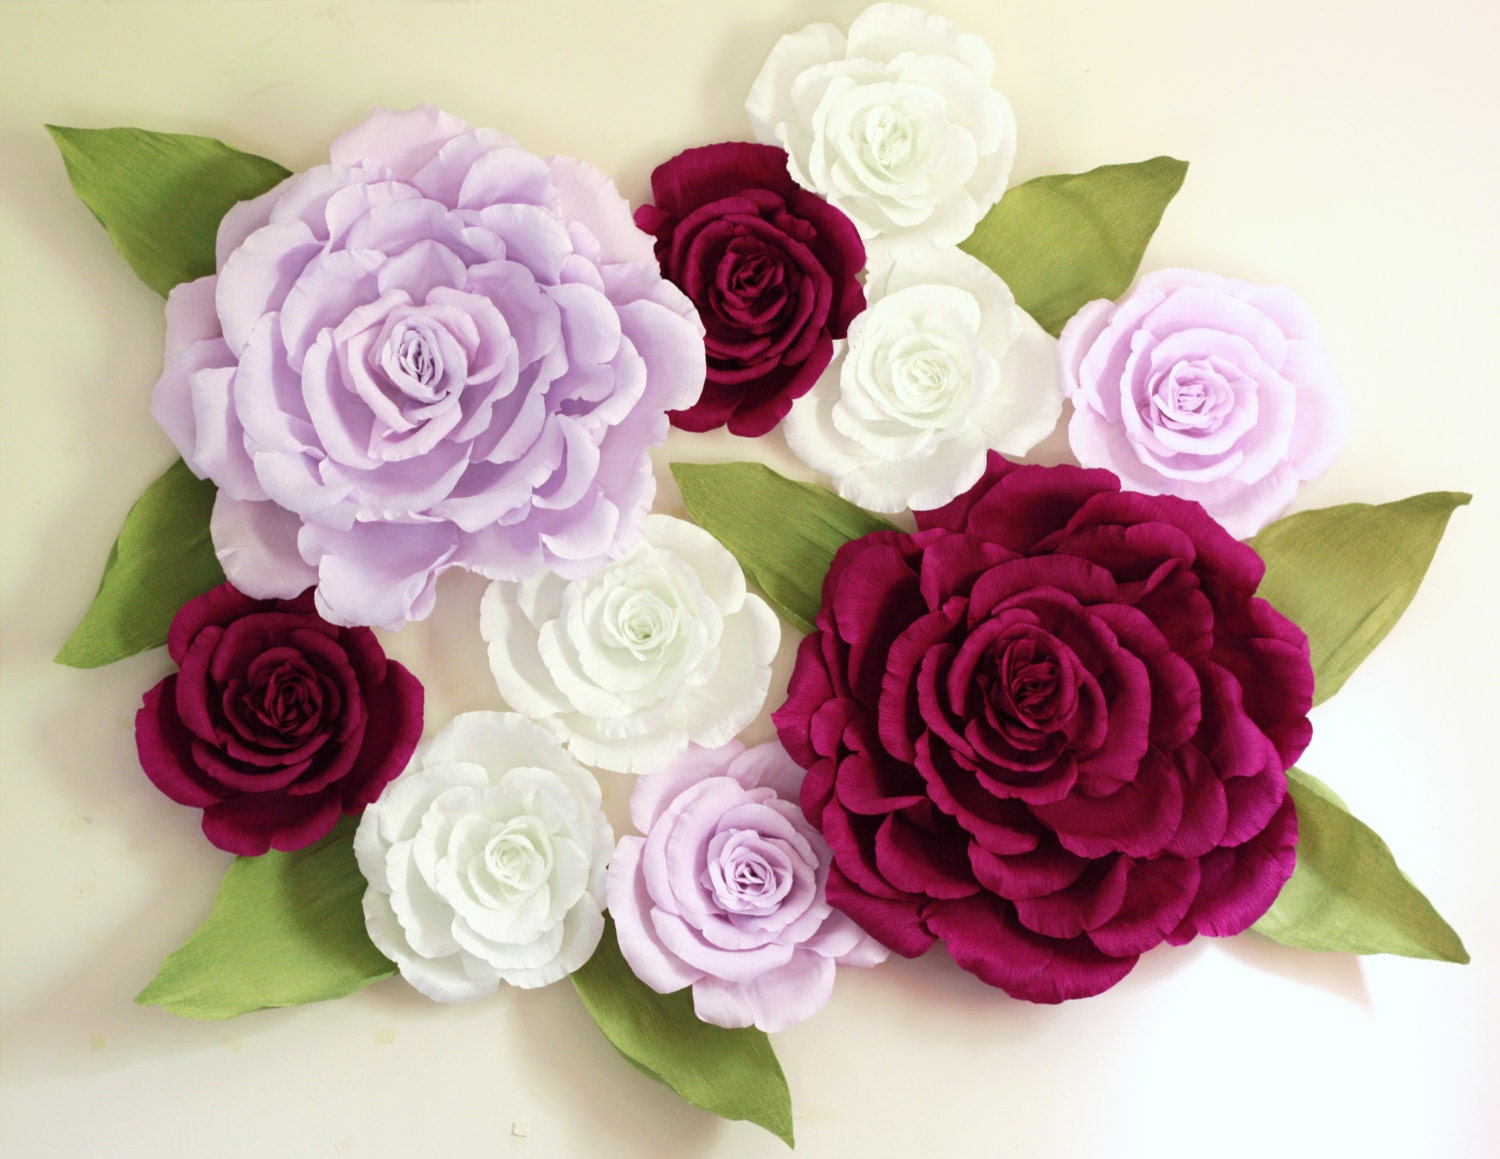 Giant Paper Flower Wall Display 5ft X 5ft Purple Wedding Etsy